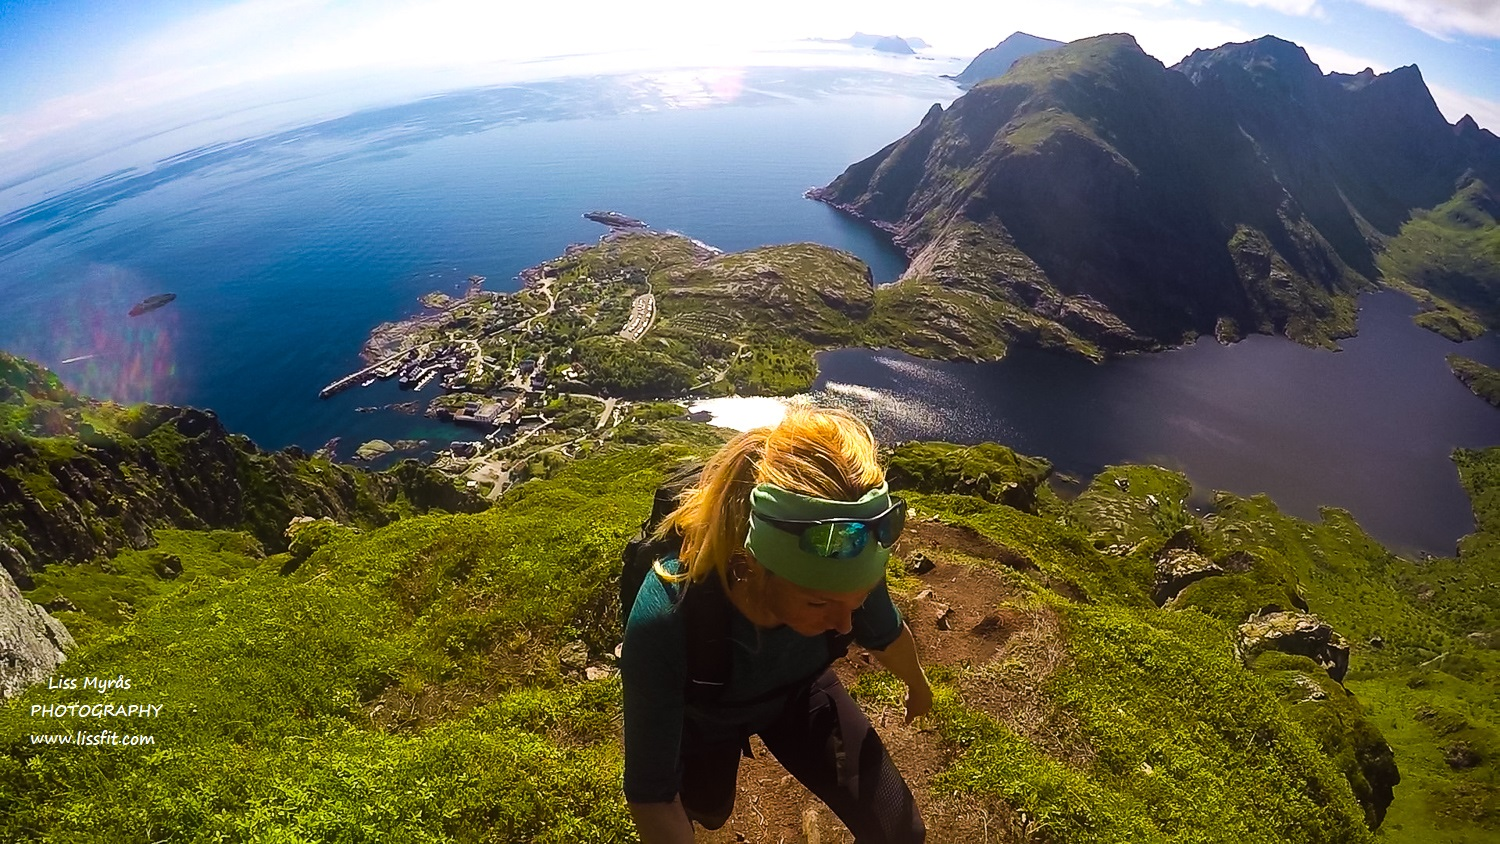 Tindstinden hiking panoramic Lofoten Moskenes steep trail vandring steep mountains landscape